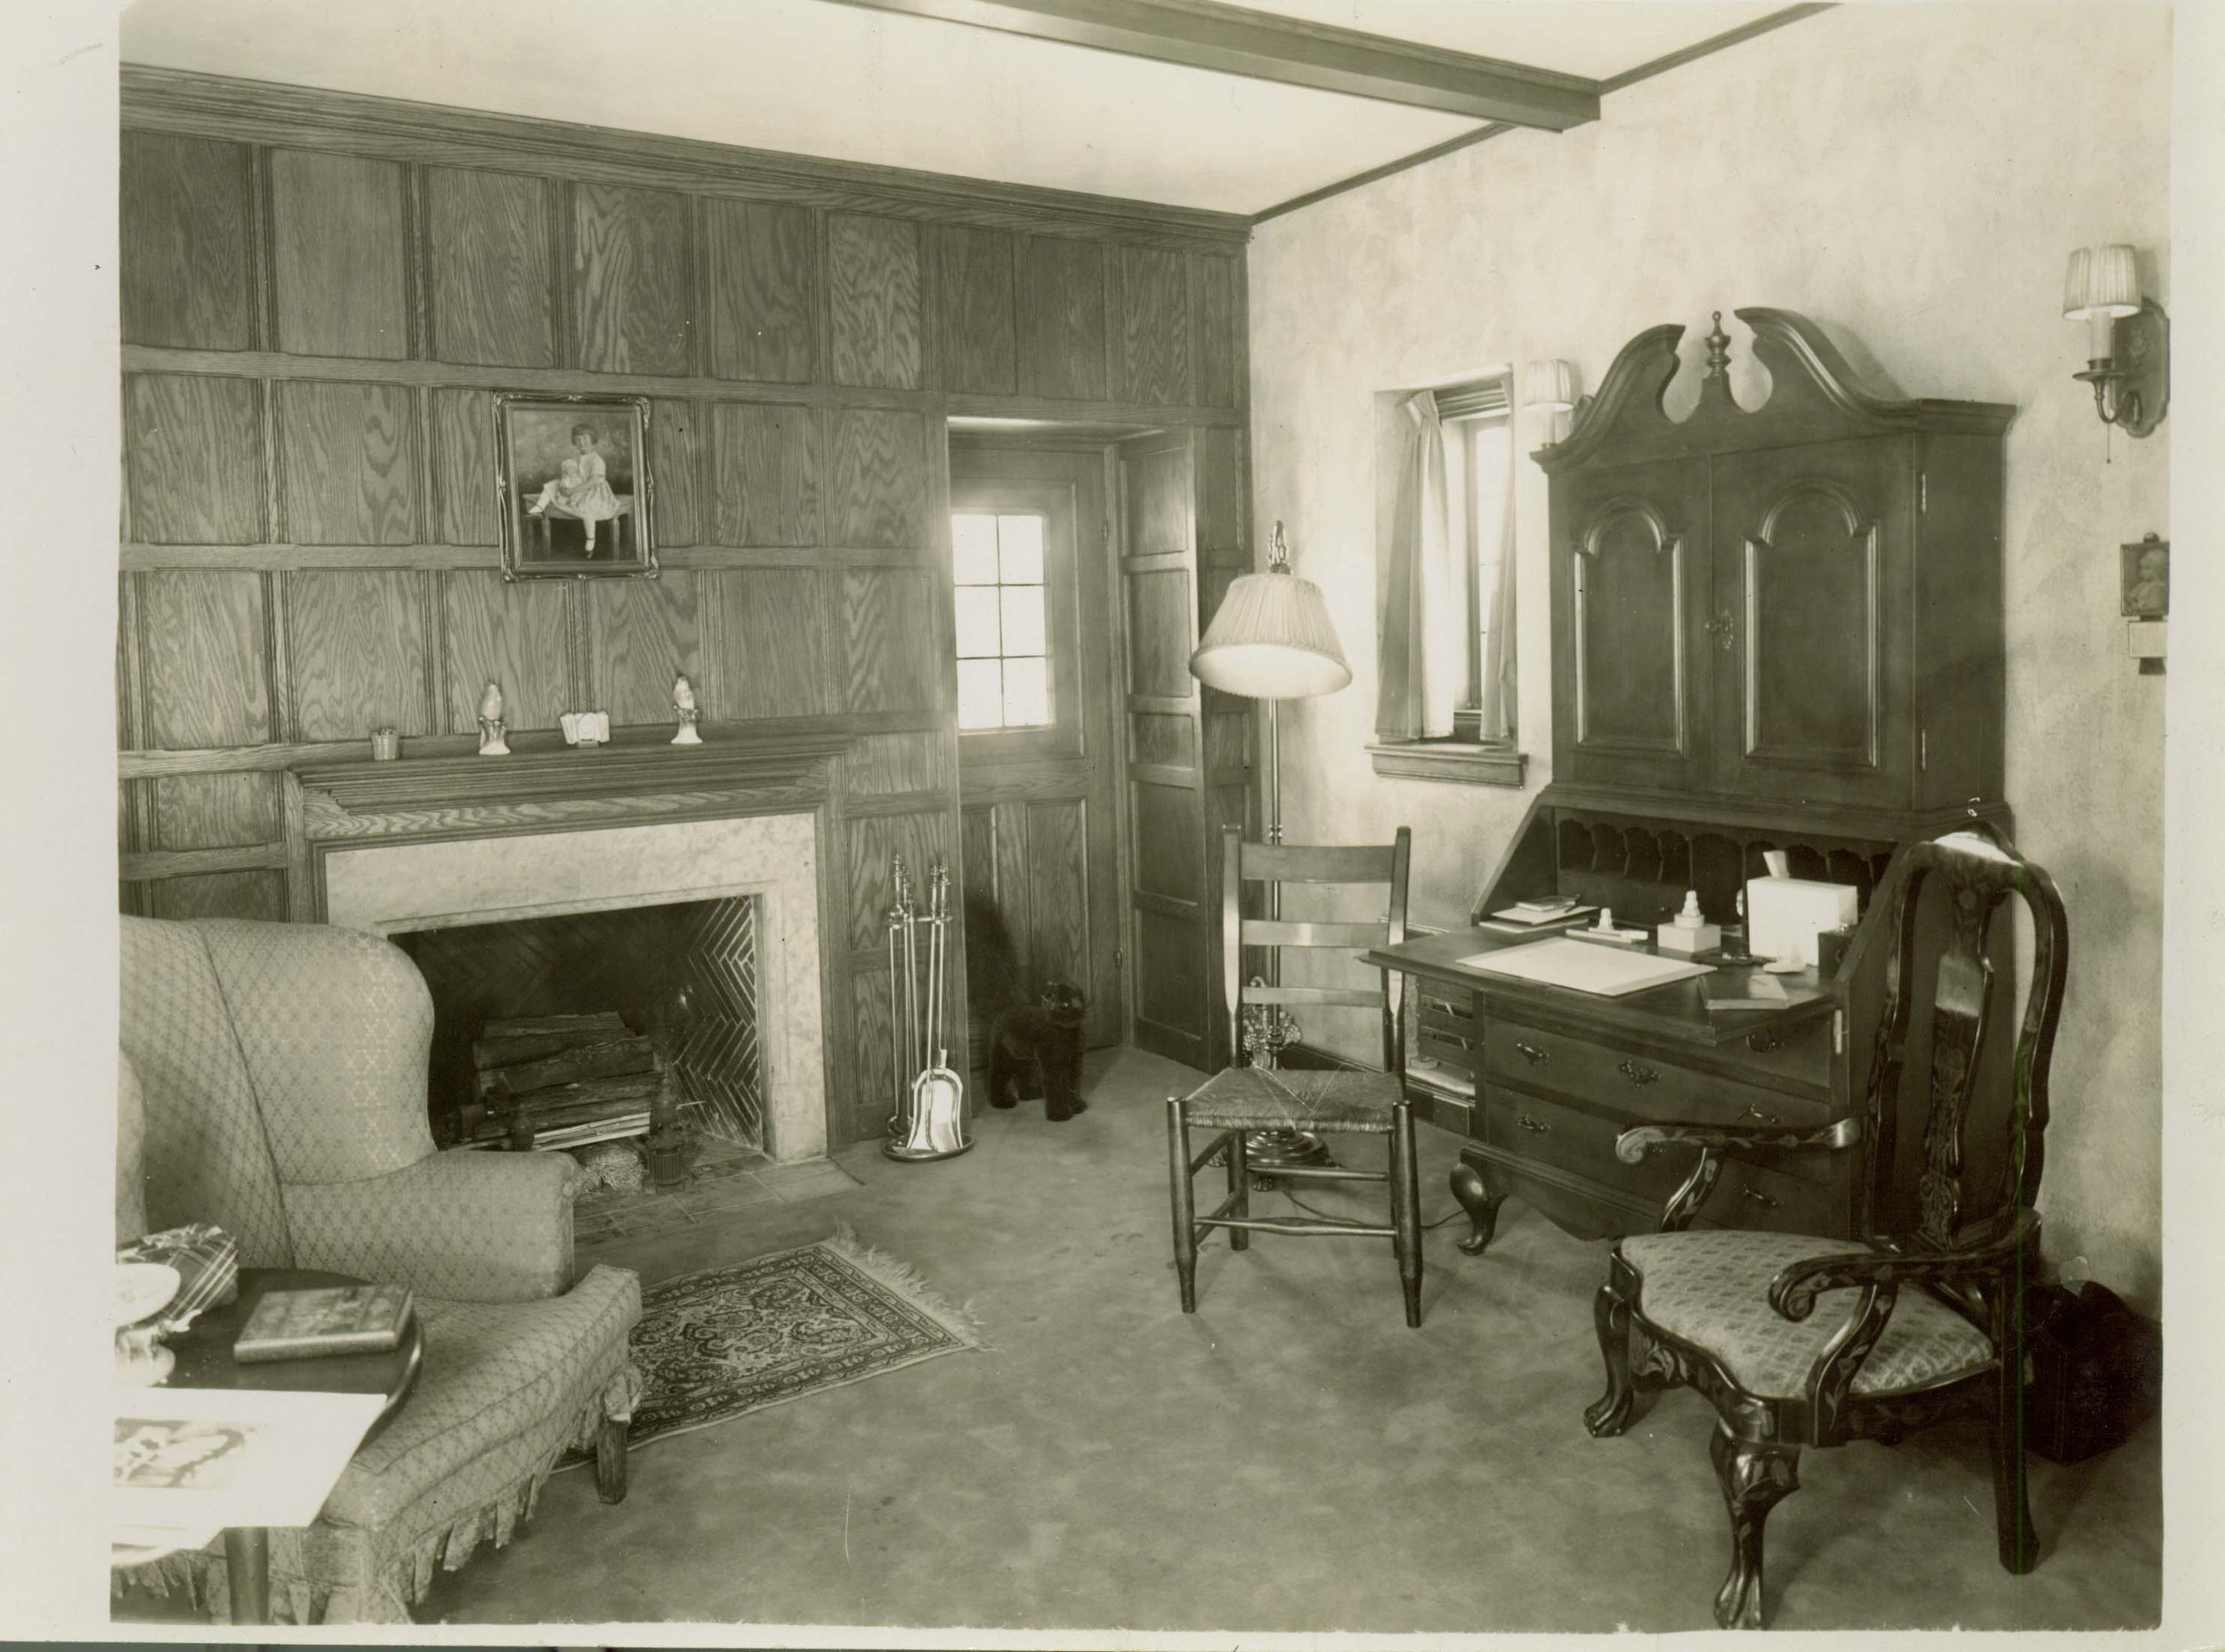 Figure 2. Knole Cottage. Living room, designed by William Kapp of Smith, Hinchman and Grylls, 1926. Photograph courtesy Meadow Brook Hall Archives.